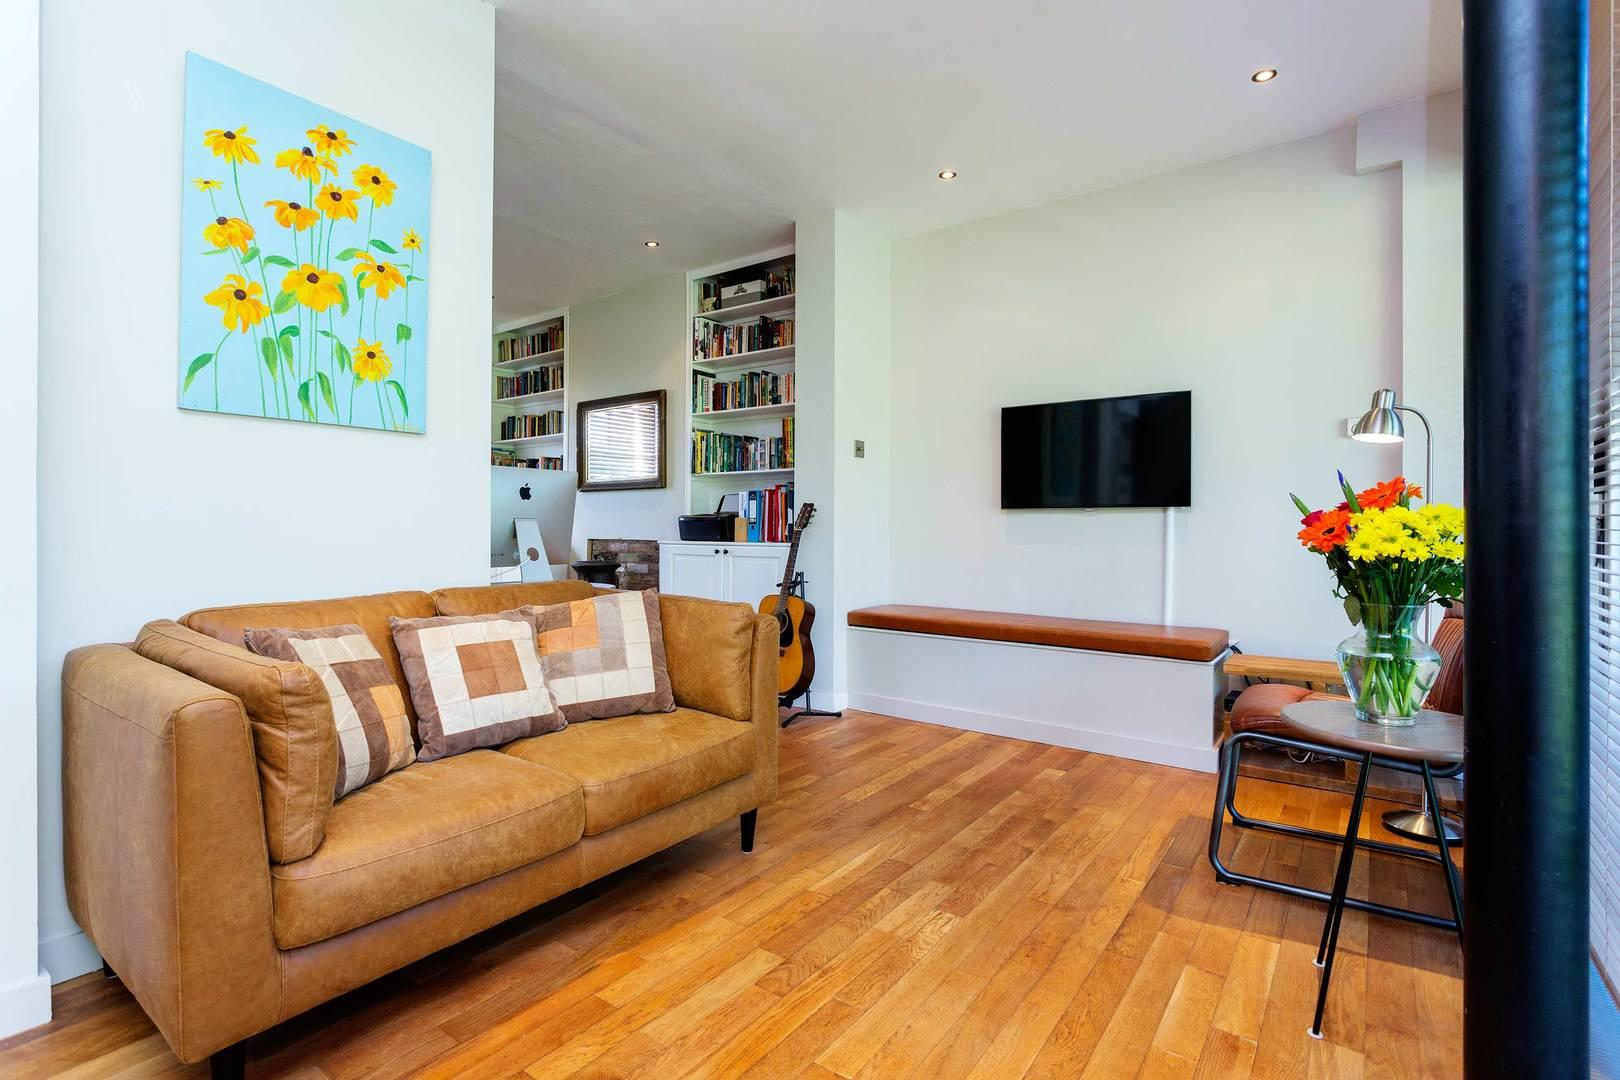 Property Image 1 - Inviting Wimbledon Home with Stunning Garden by Station